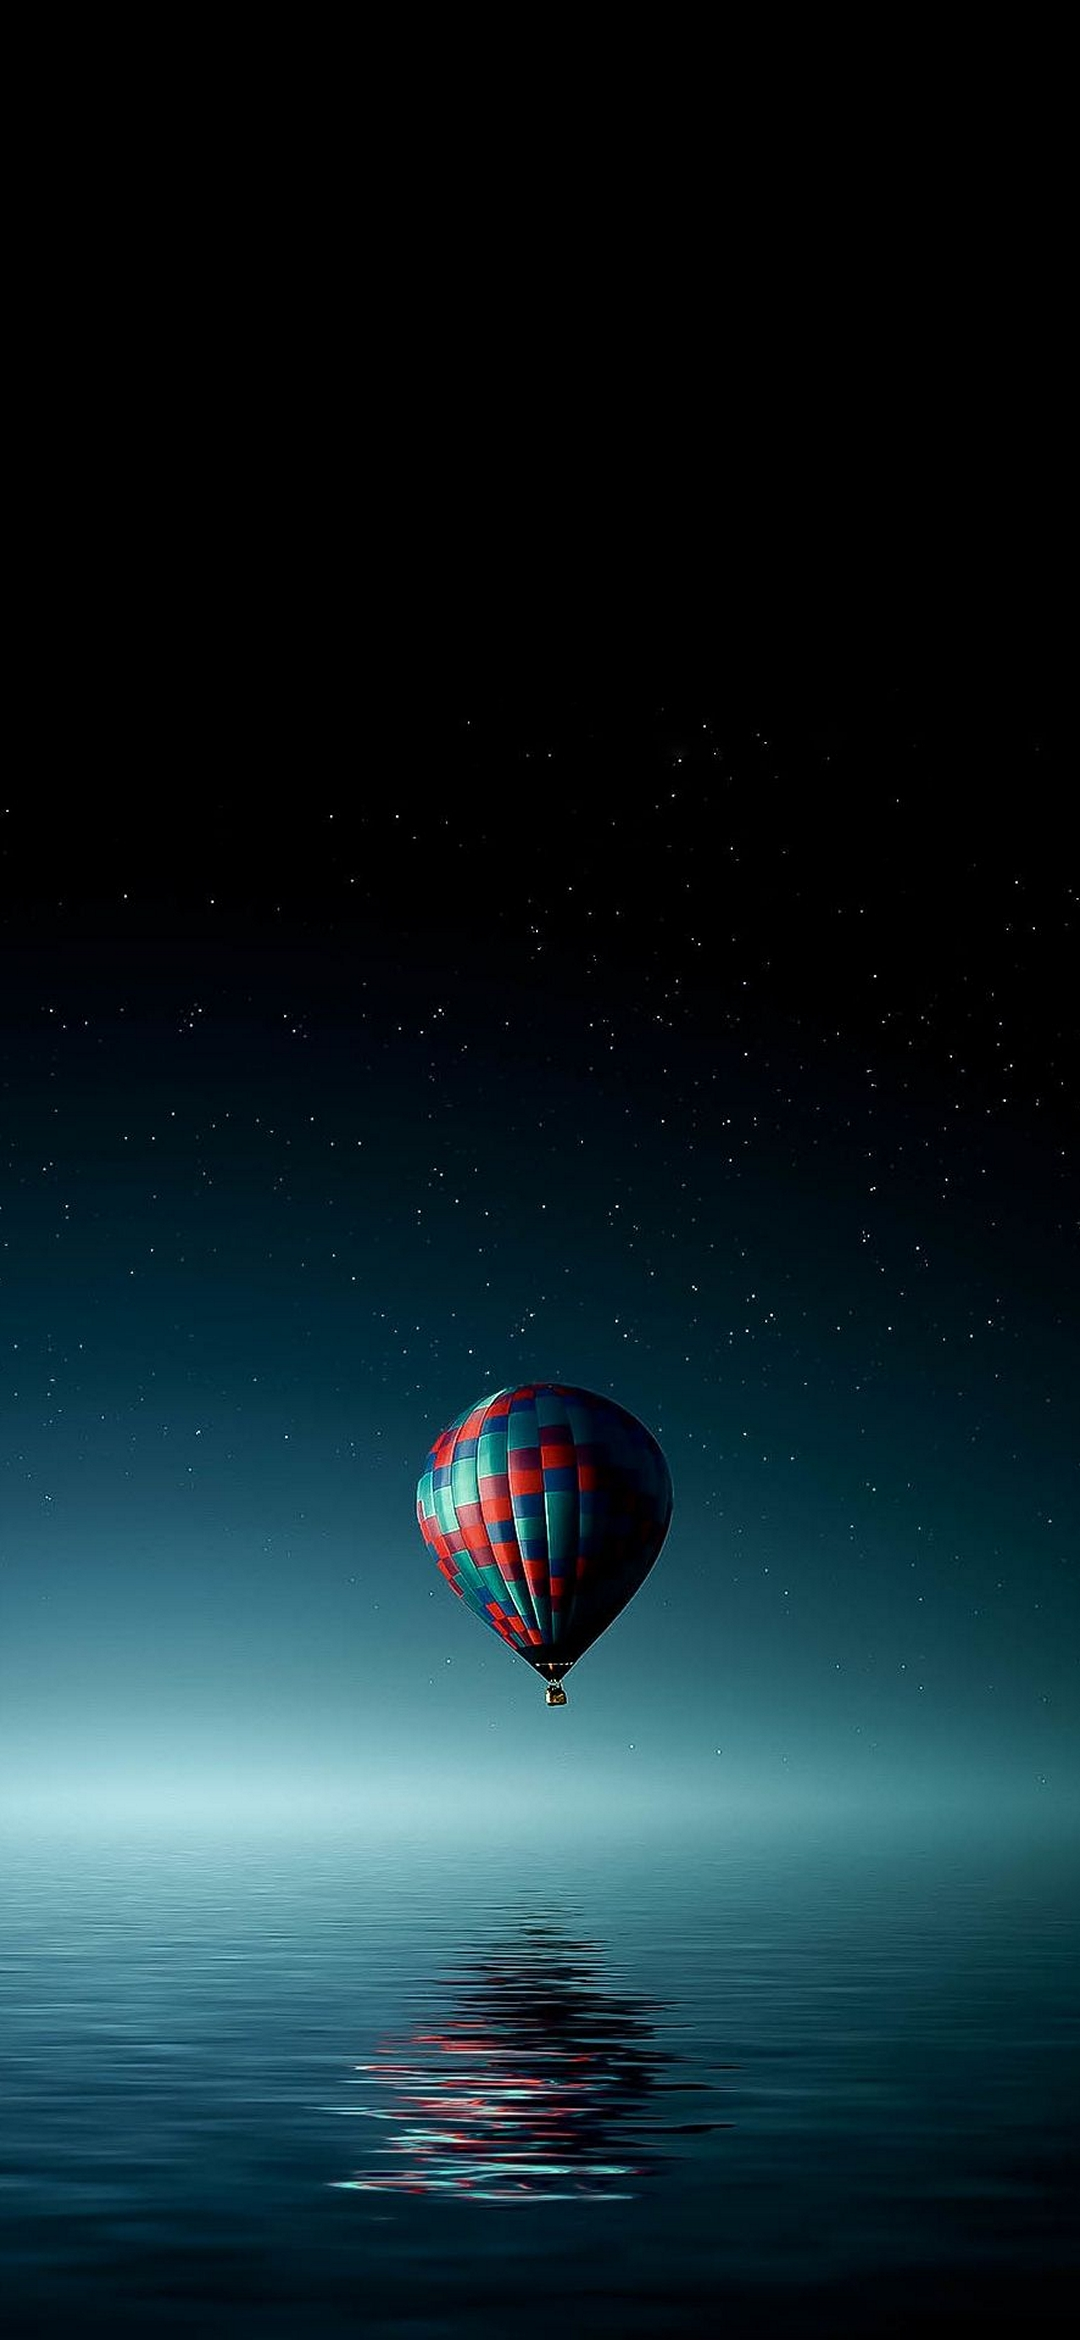 Amoled iPhone mobile Wallpaper 12 1